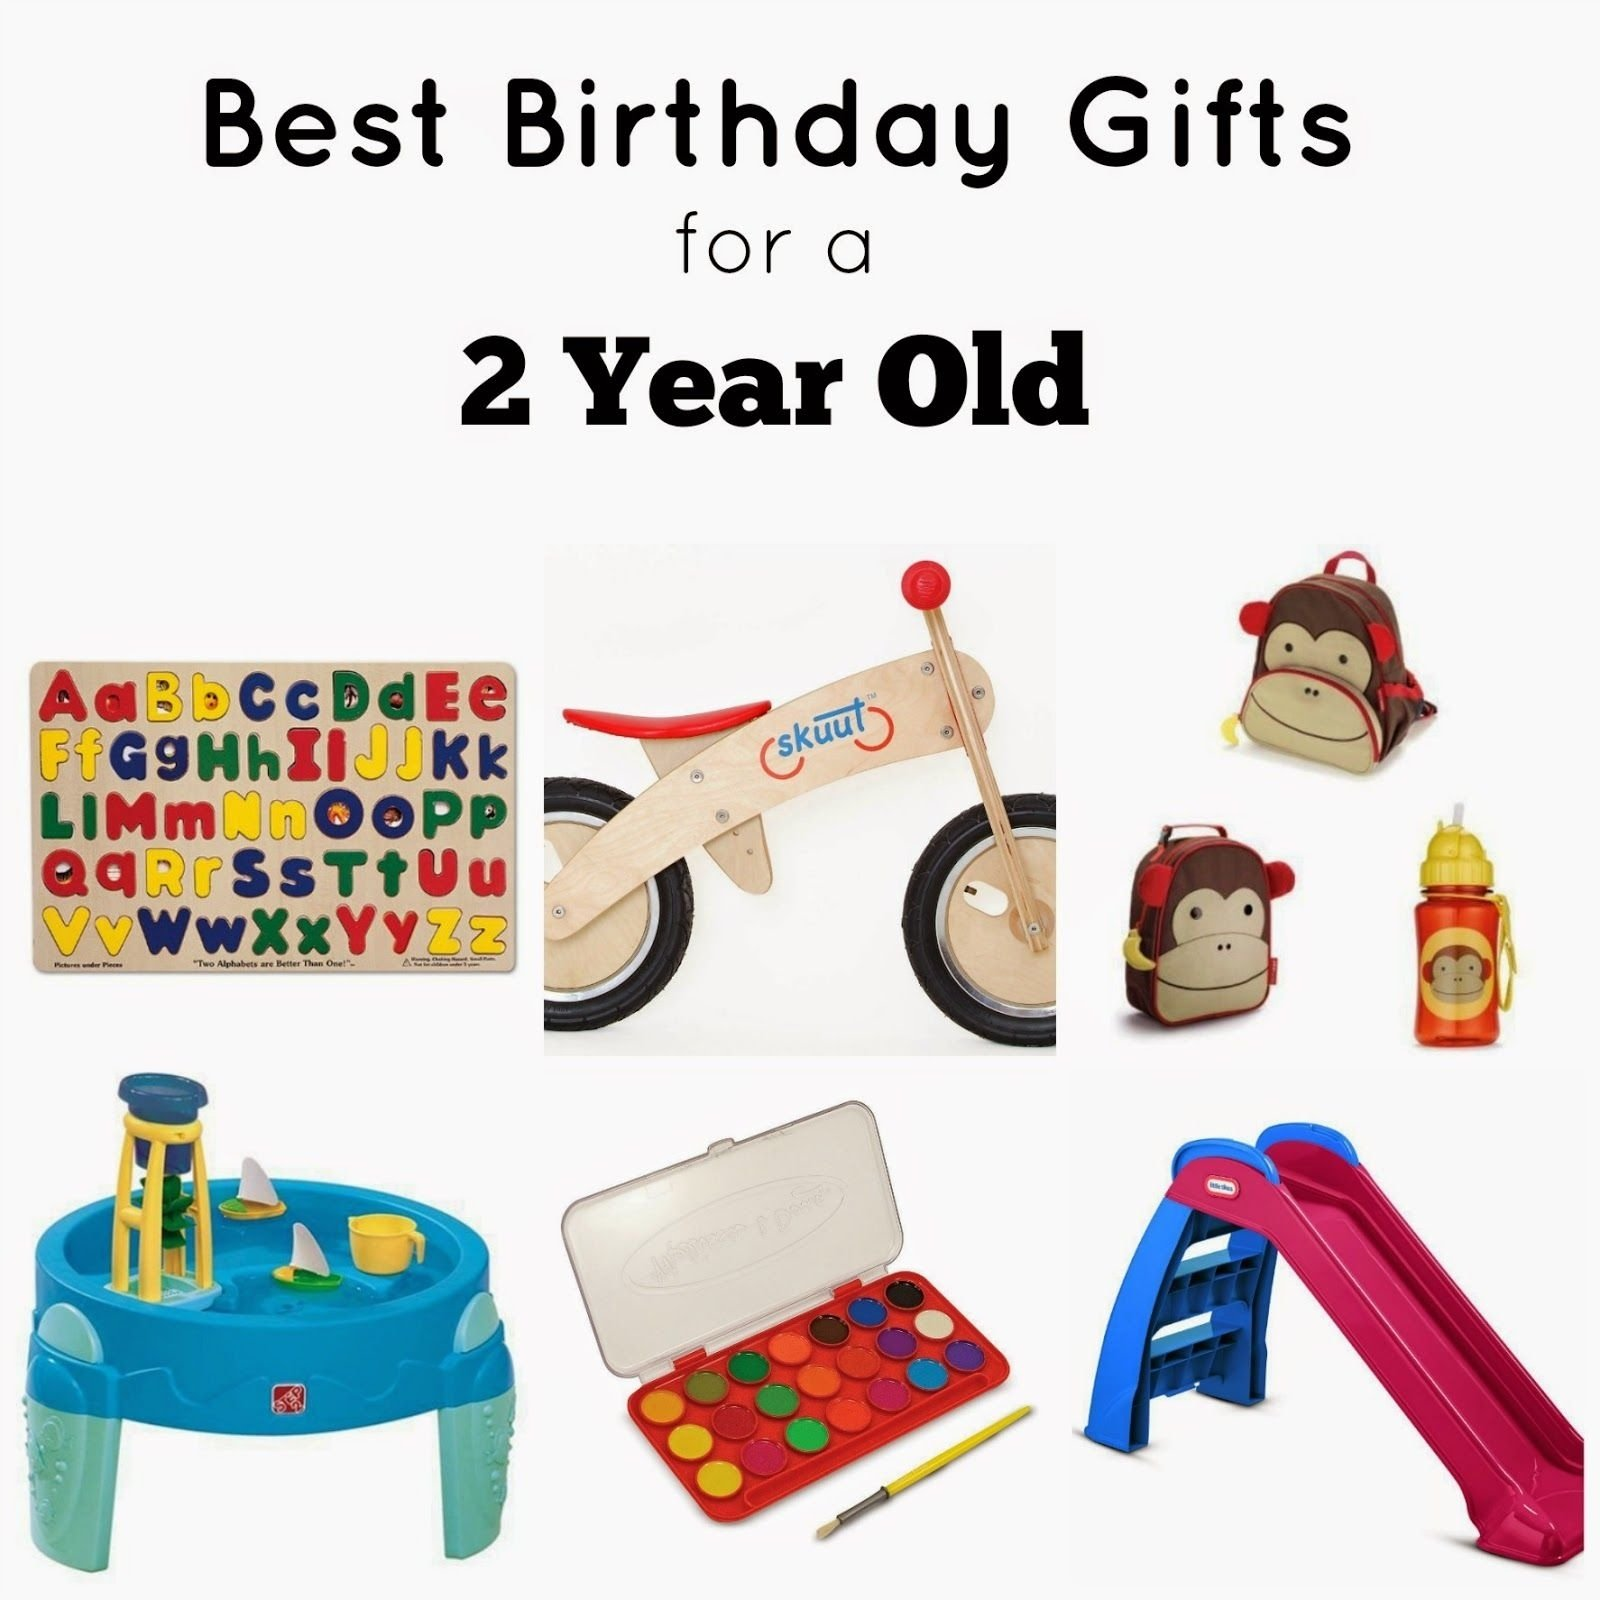 our life on a budget: best birthday gifts for a 2 year old | do